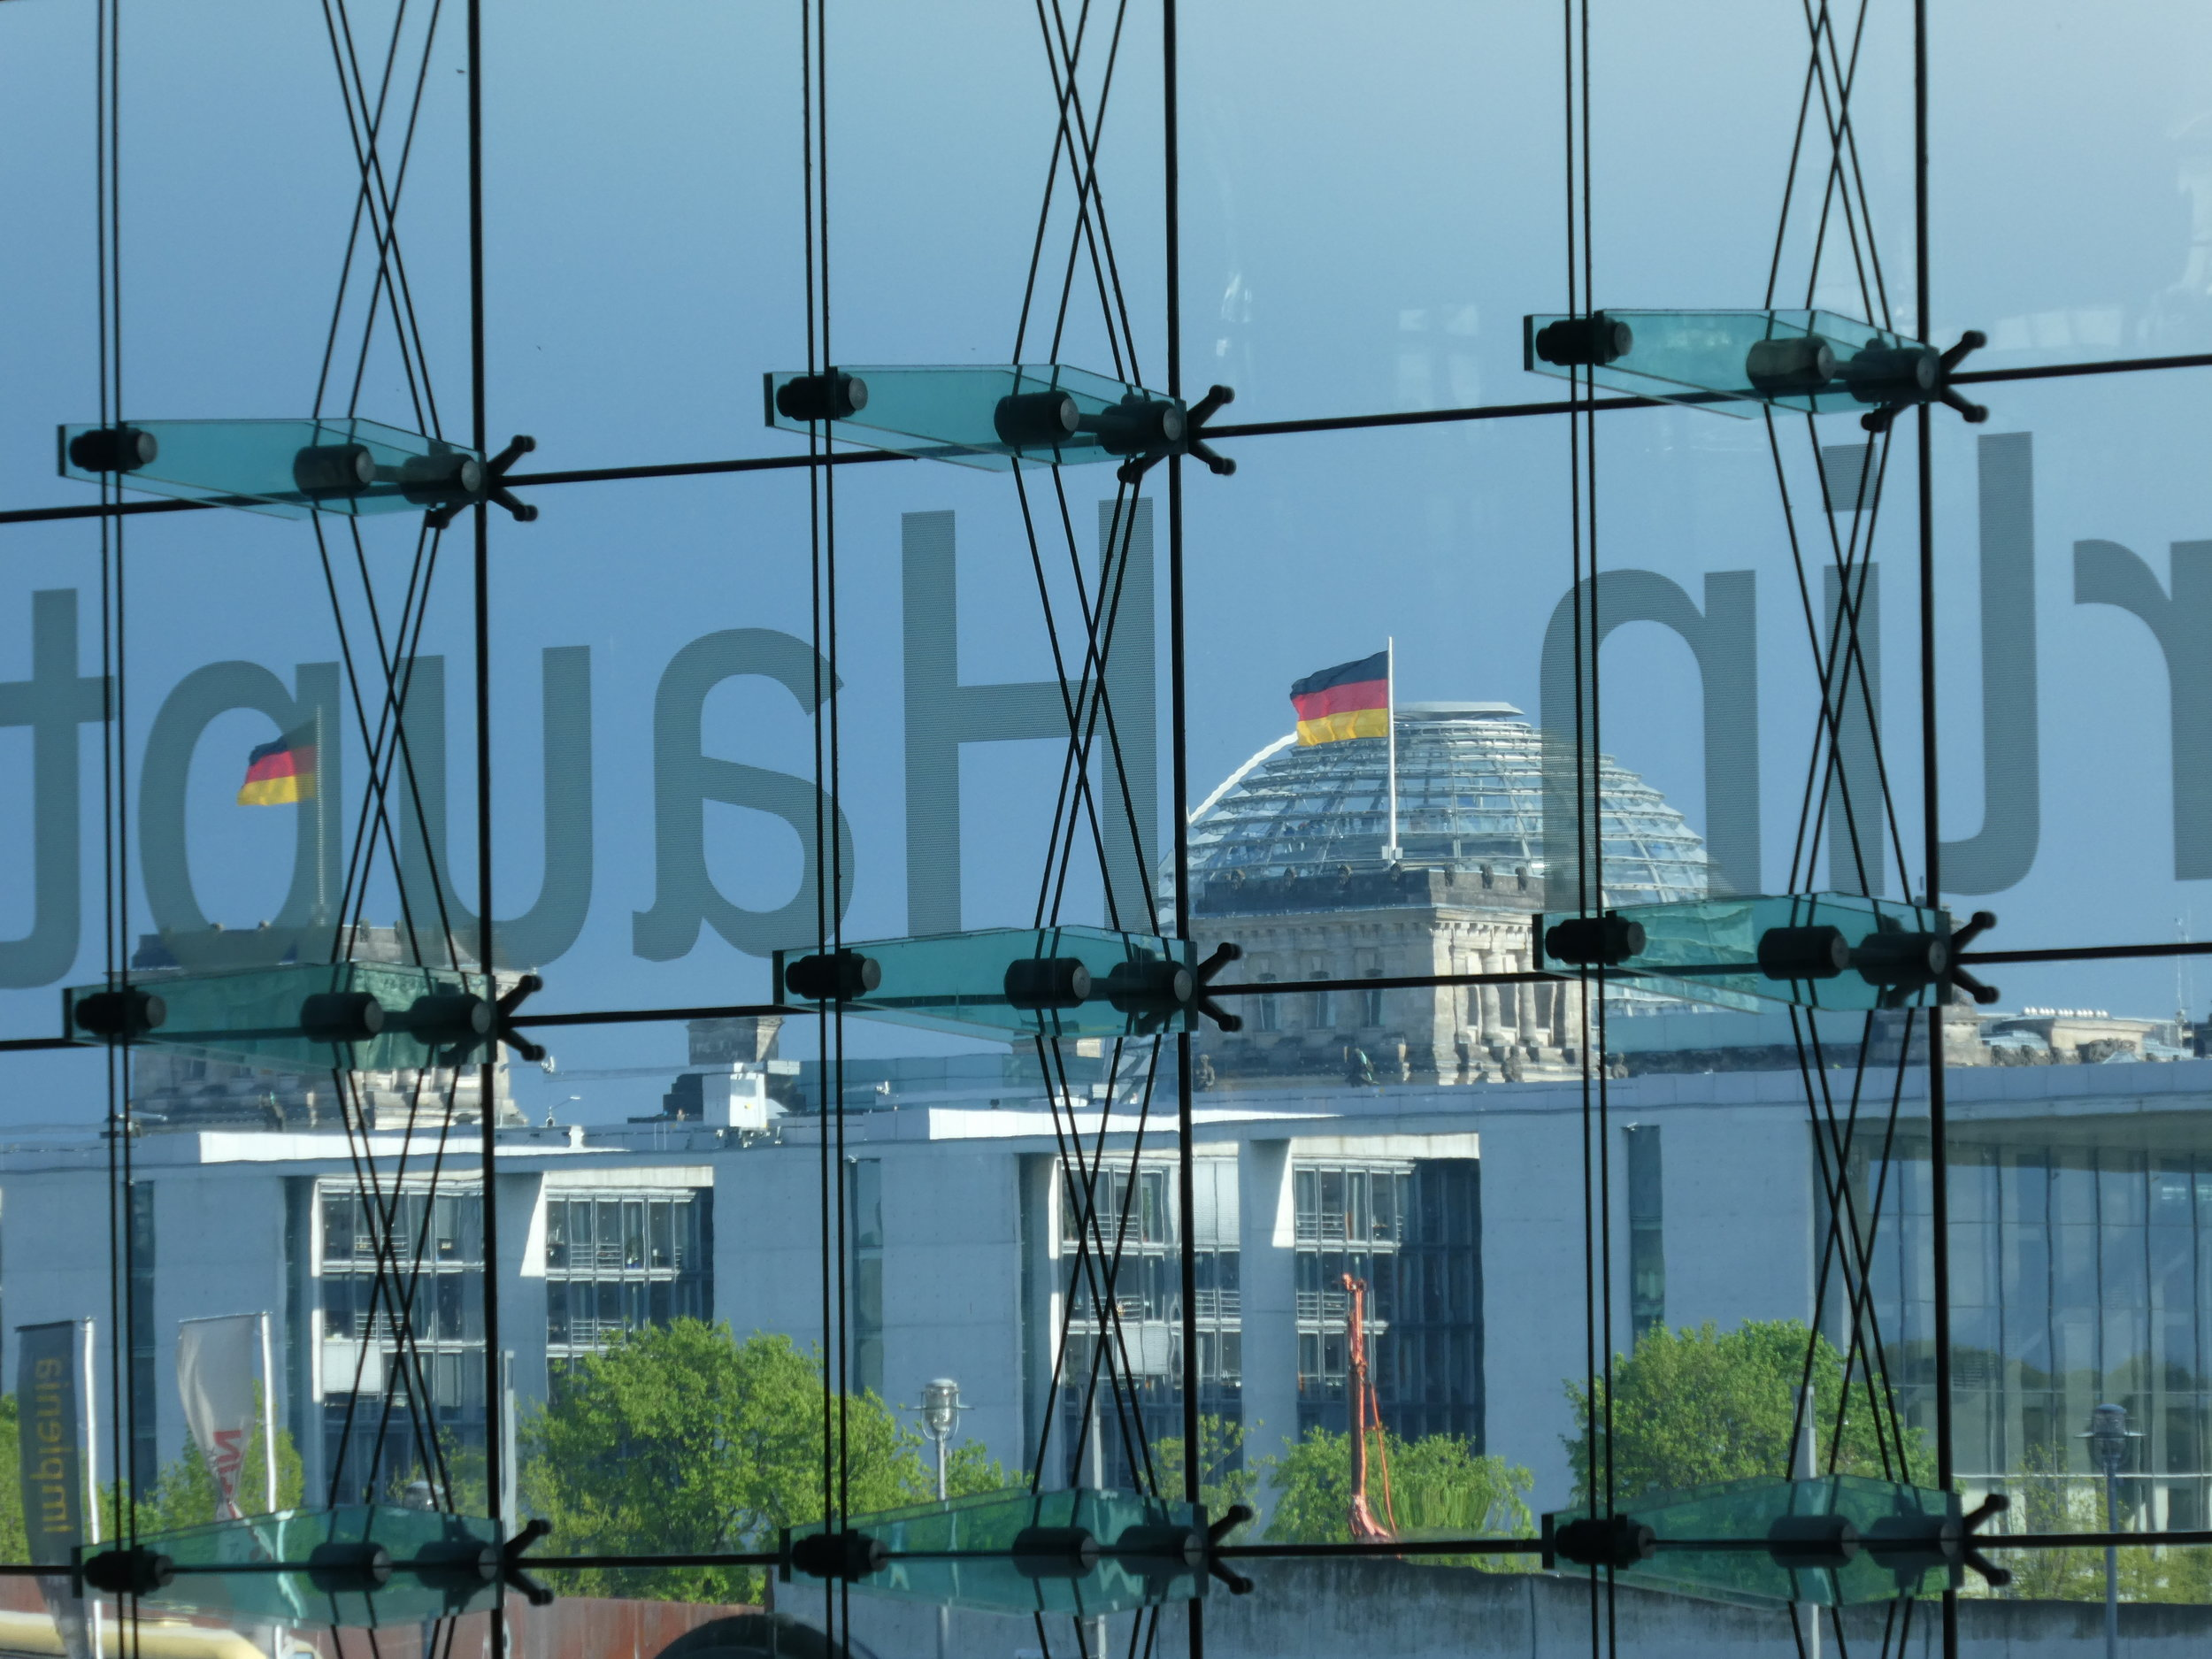 View from the Main Train Station in Berlin on the Bundestag (German Parliament)